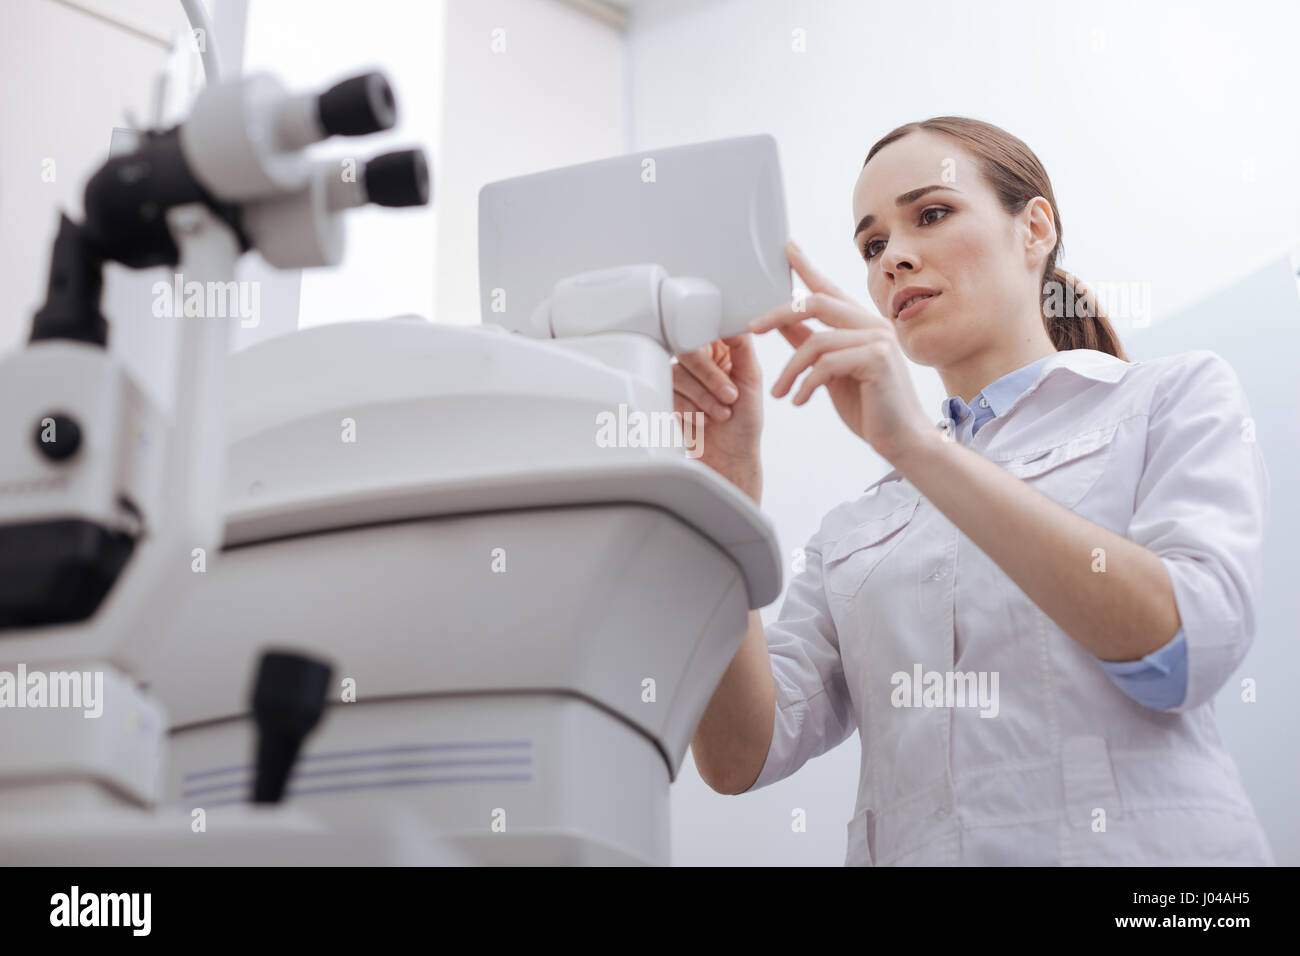 Good looking pleasant woman looking at the control panel - Stock Image